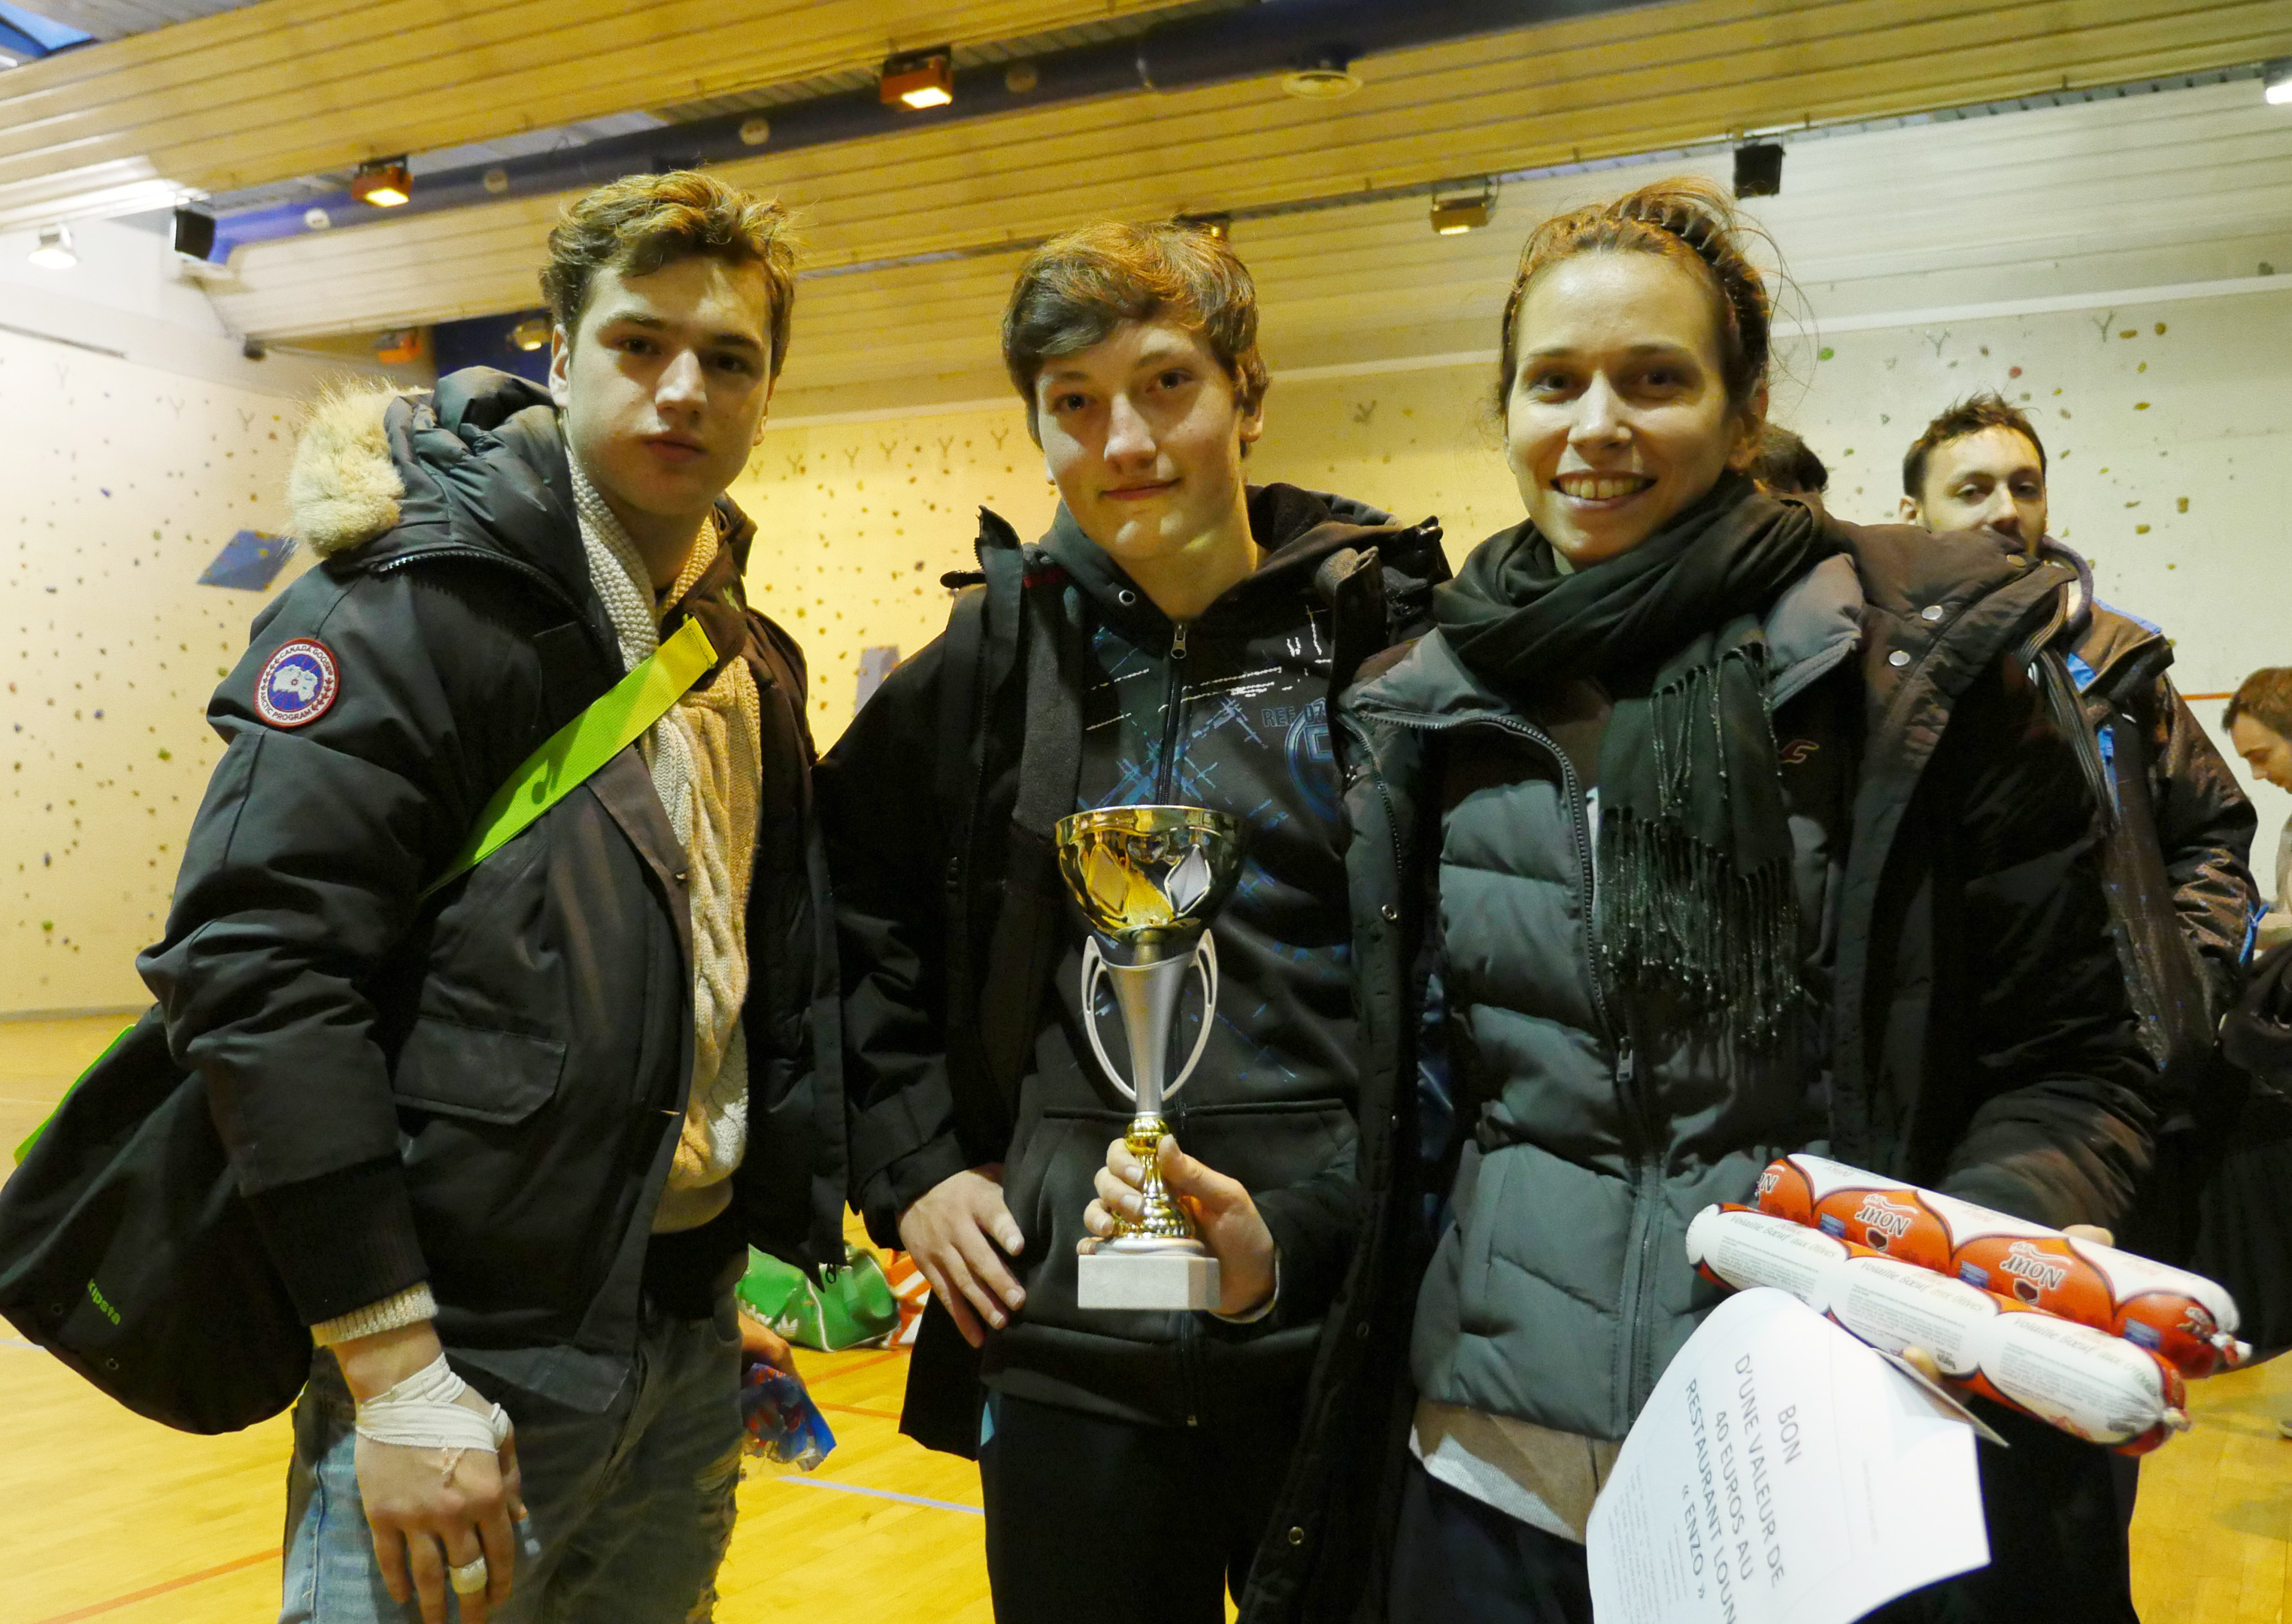 Tournoi Volley USMA 2015-58.JPG